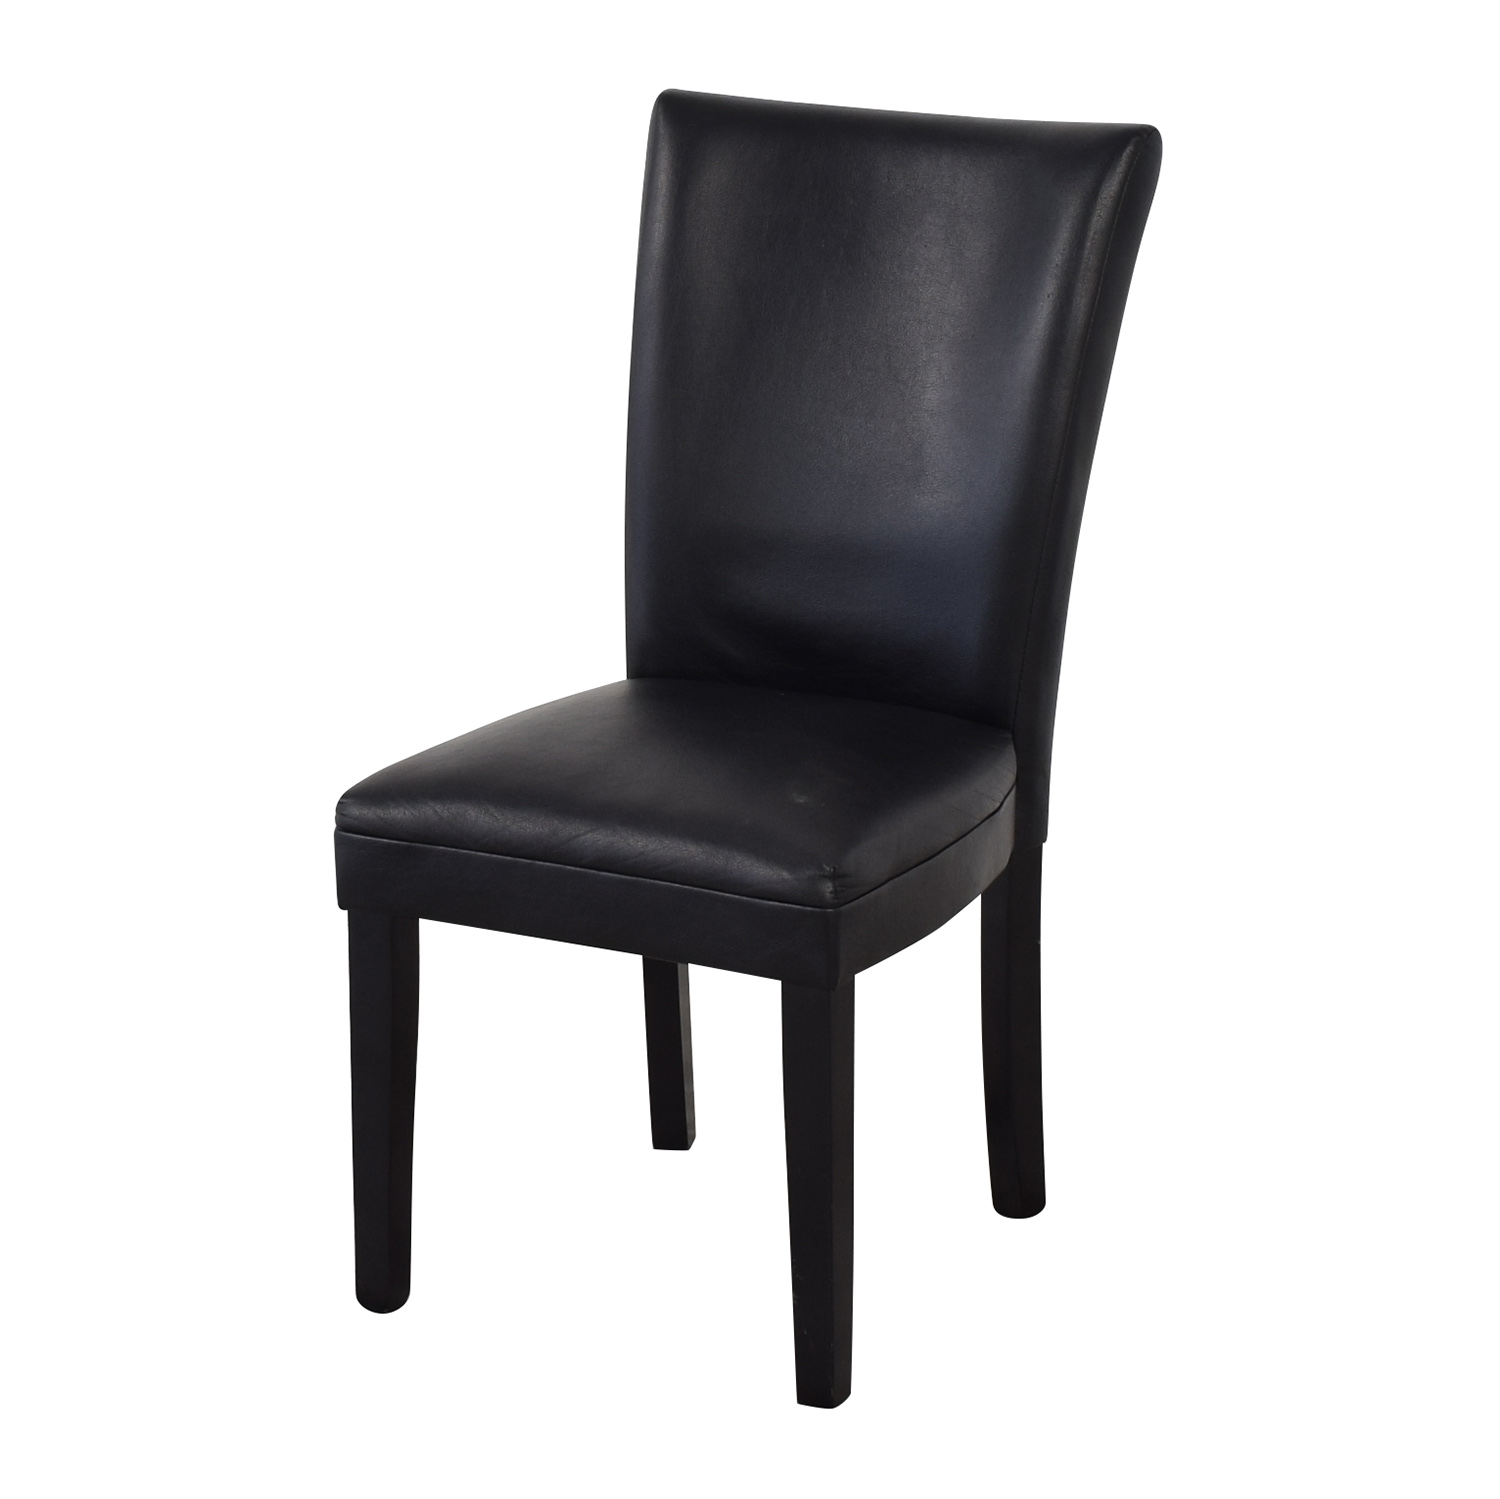 Steve Silver Co Dining Chairs / Dining Chairs